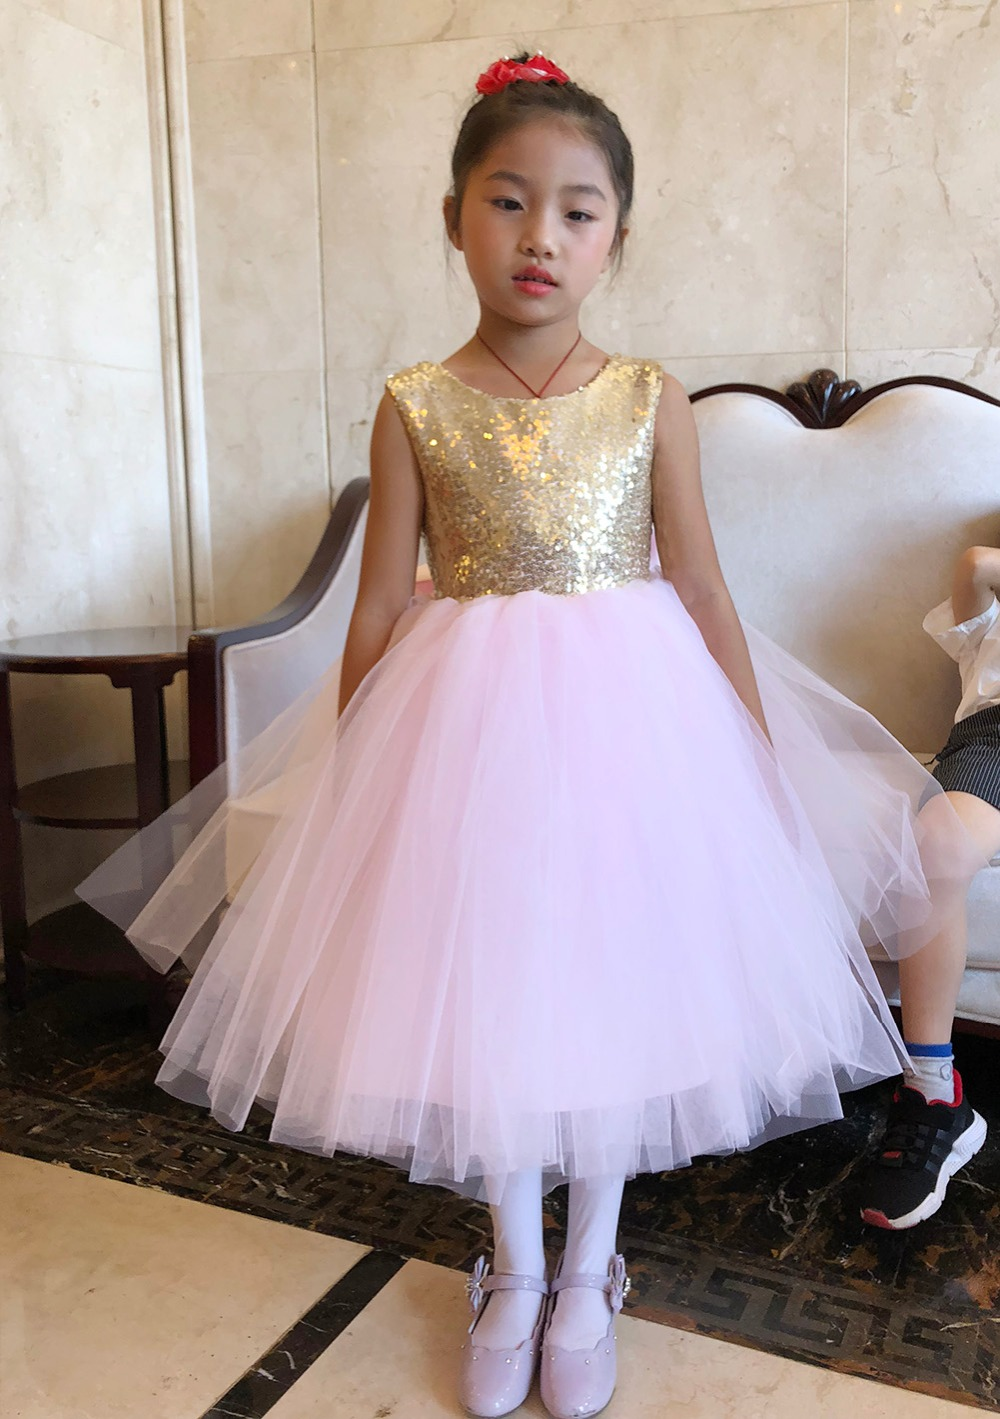 Pink Teen Wedding Dress Sequin Knee Length O-neck Paillette Girls Sequin Dress for Girls Sequin Evening Dress Tutu with Bowknot (1)